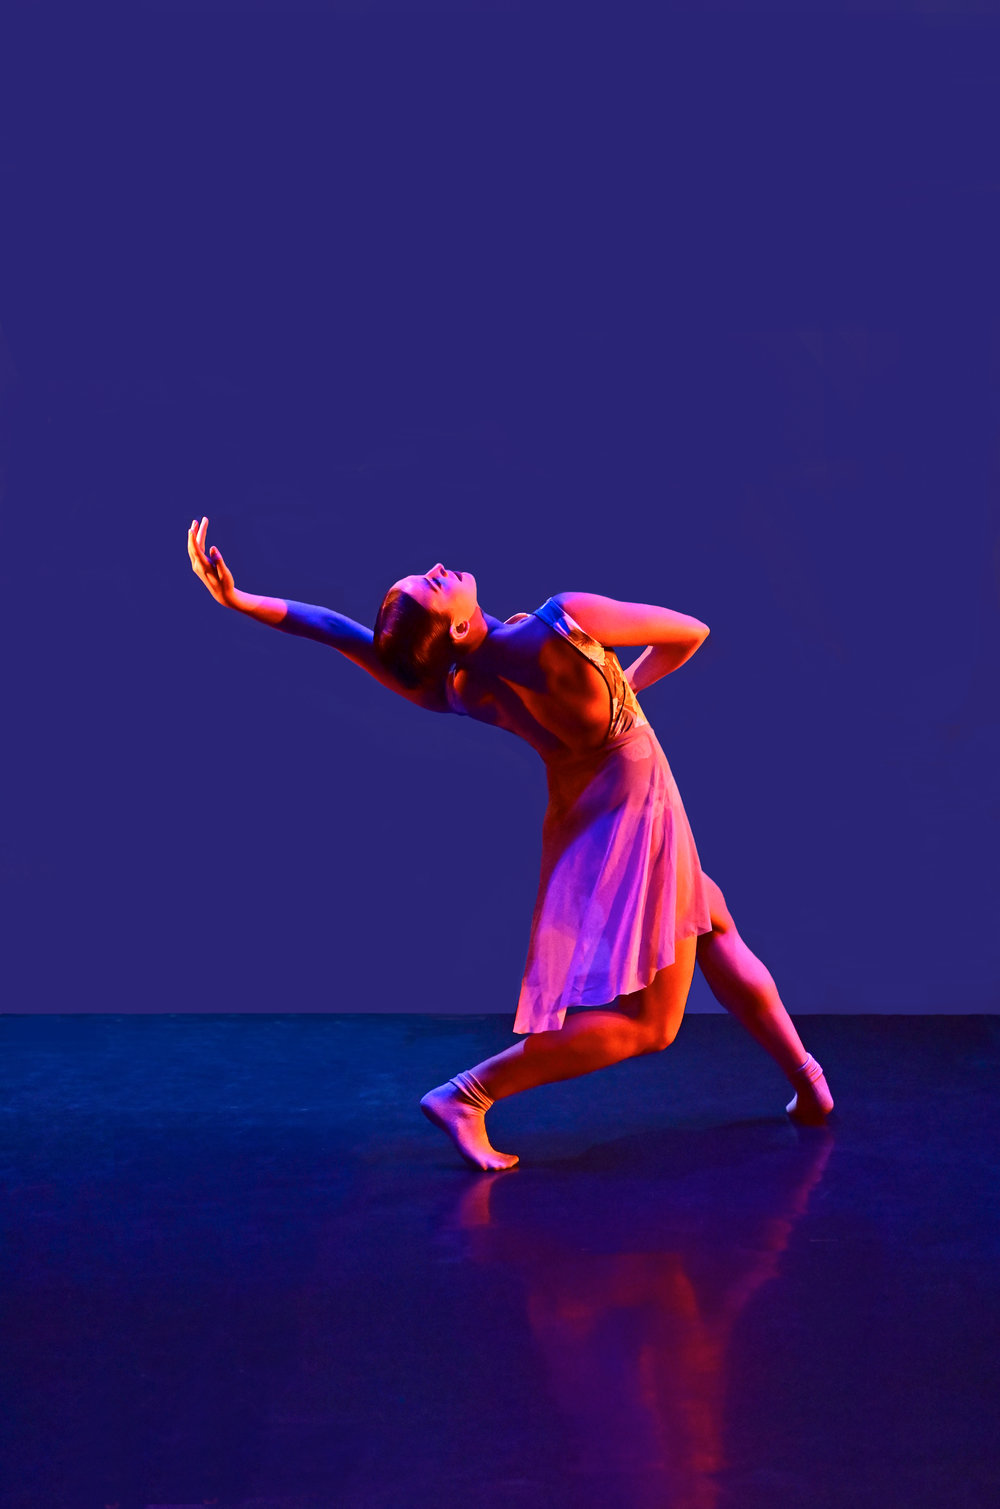 Evolution Of Blue - Choreographer: Christopher Page-SandersMusical Score: Cecile McLorin Salvant